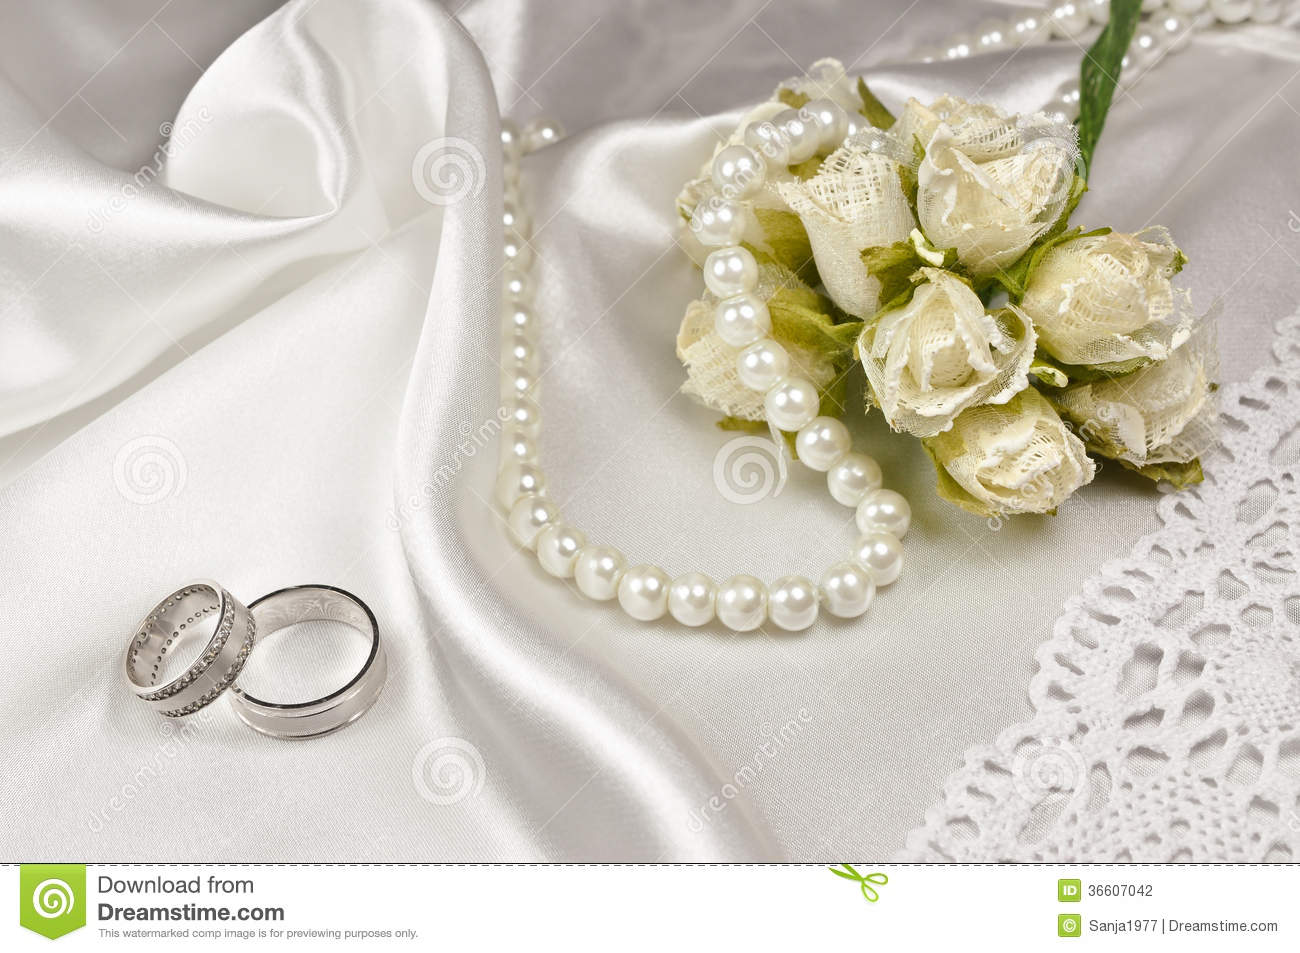 Wedding accessories pearls flowers pearls - Royalty Free Stock Photo